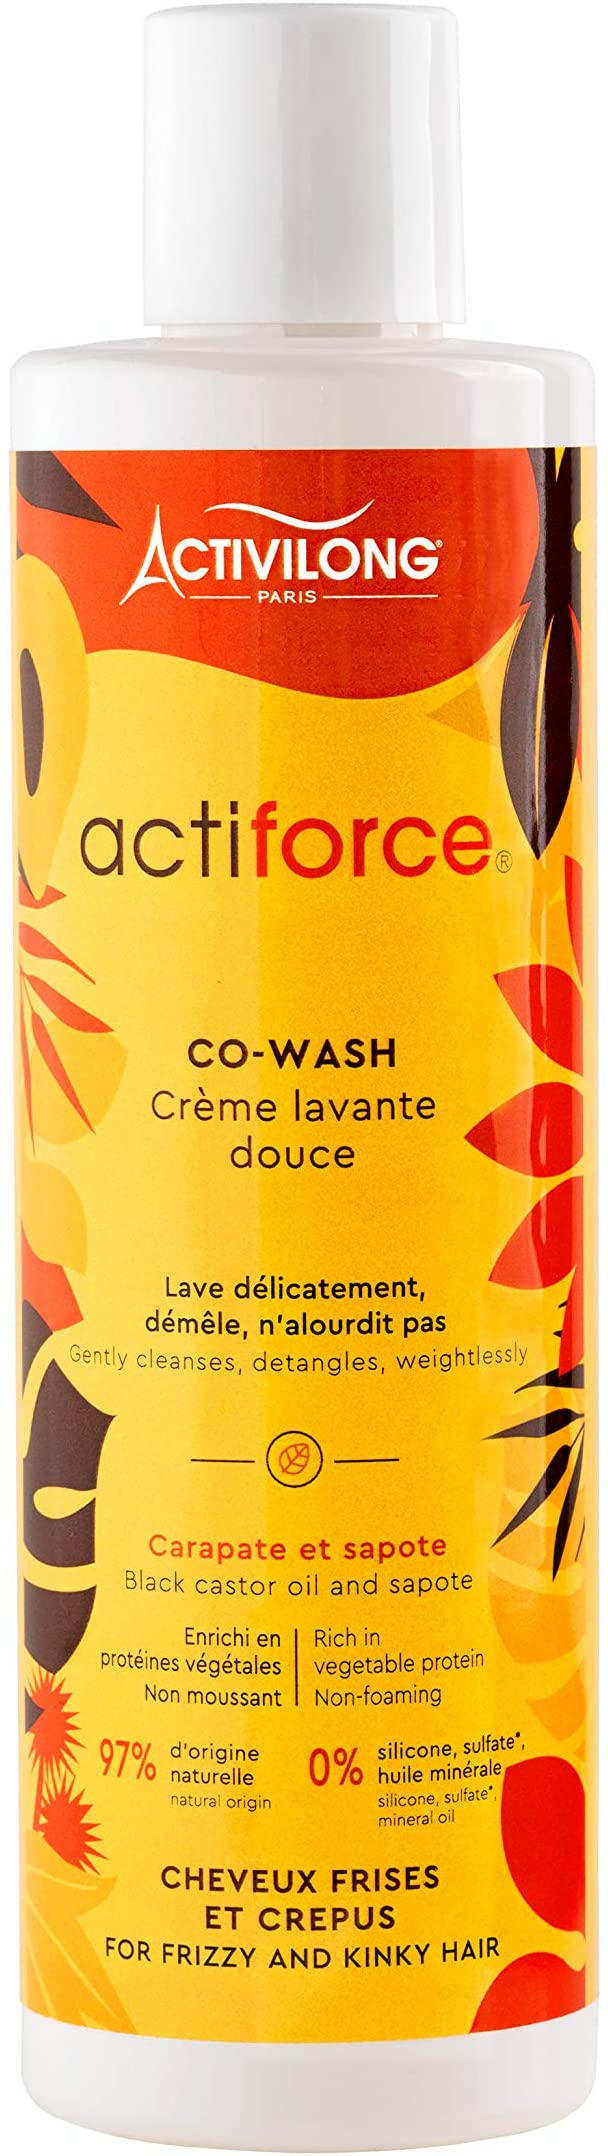 ACTI FORCE CO-WASH